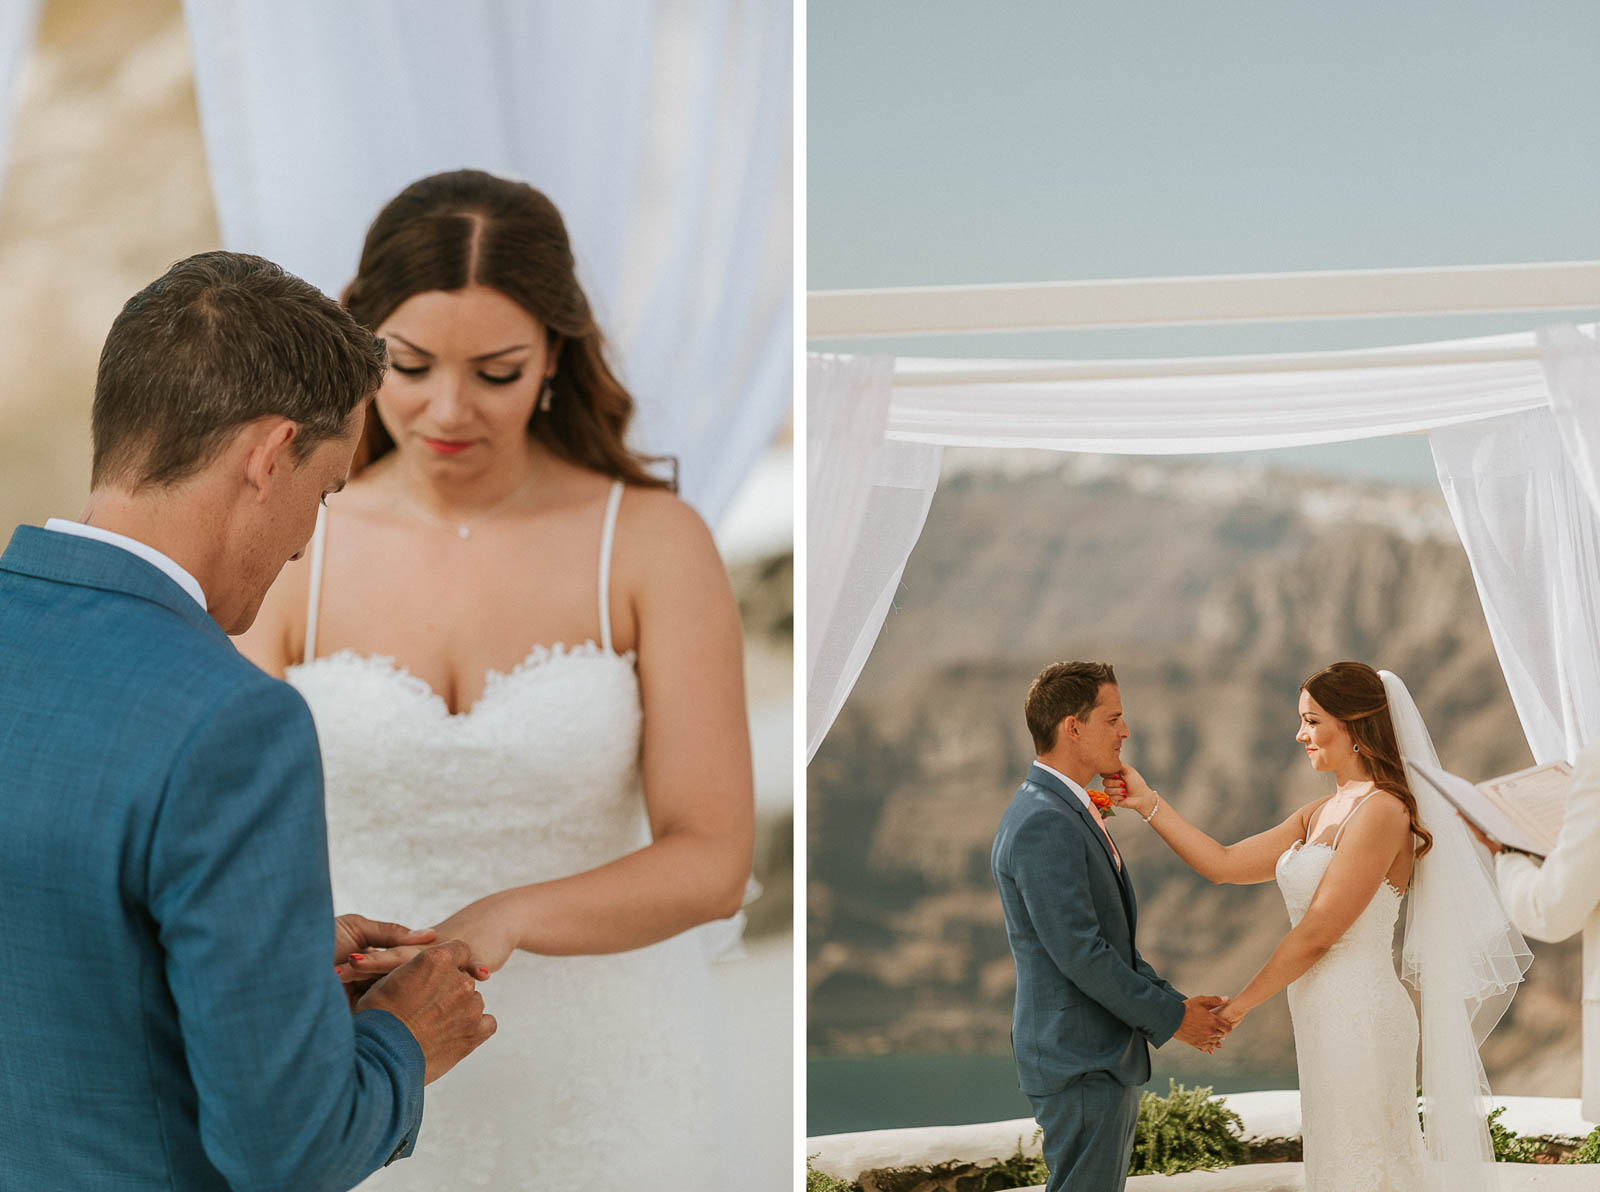 Santorini-Wedding-Photographer-Greece-Destination-Weddings-Mait-Juriado-M&J-Studios-063